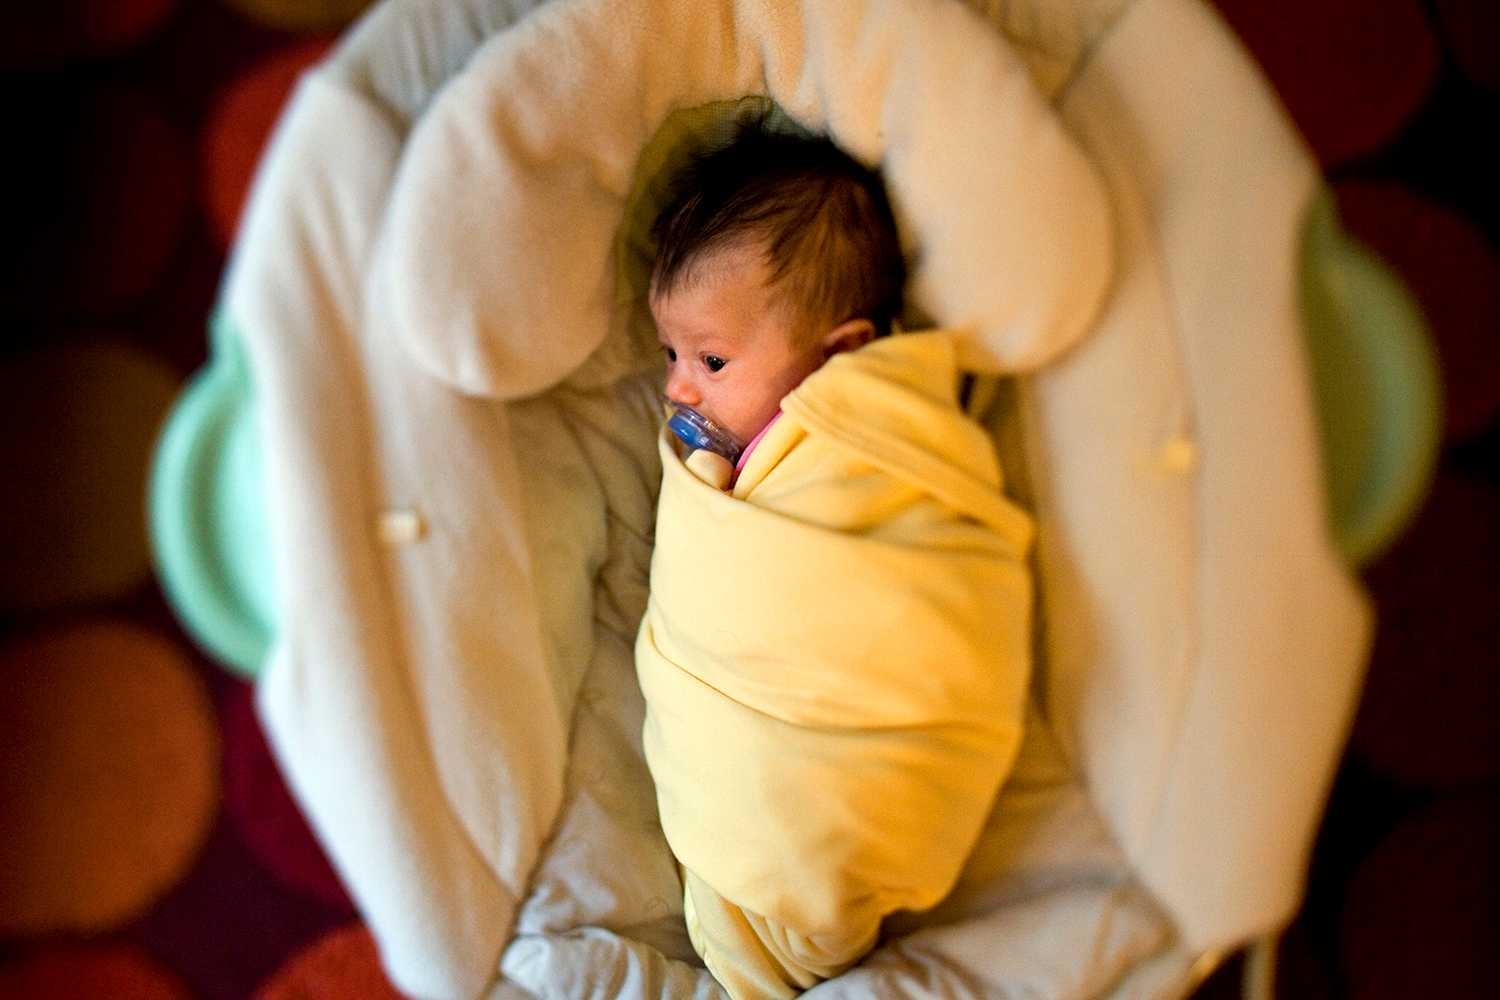 Swaddling What Is It And Does It Really Help Your Baby